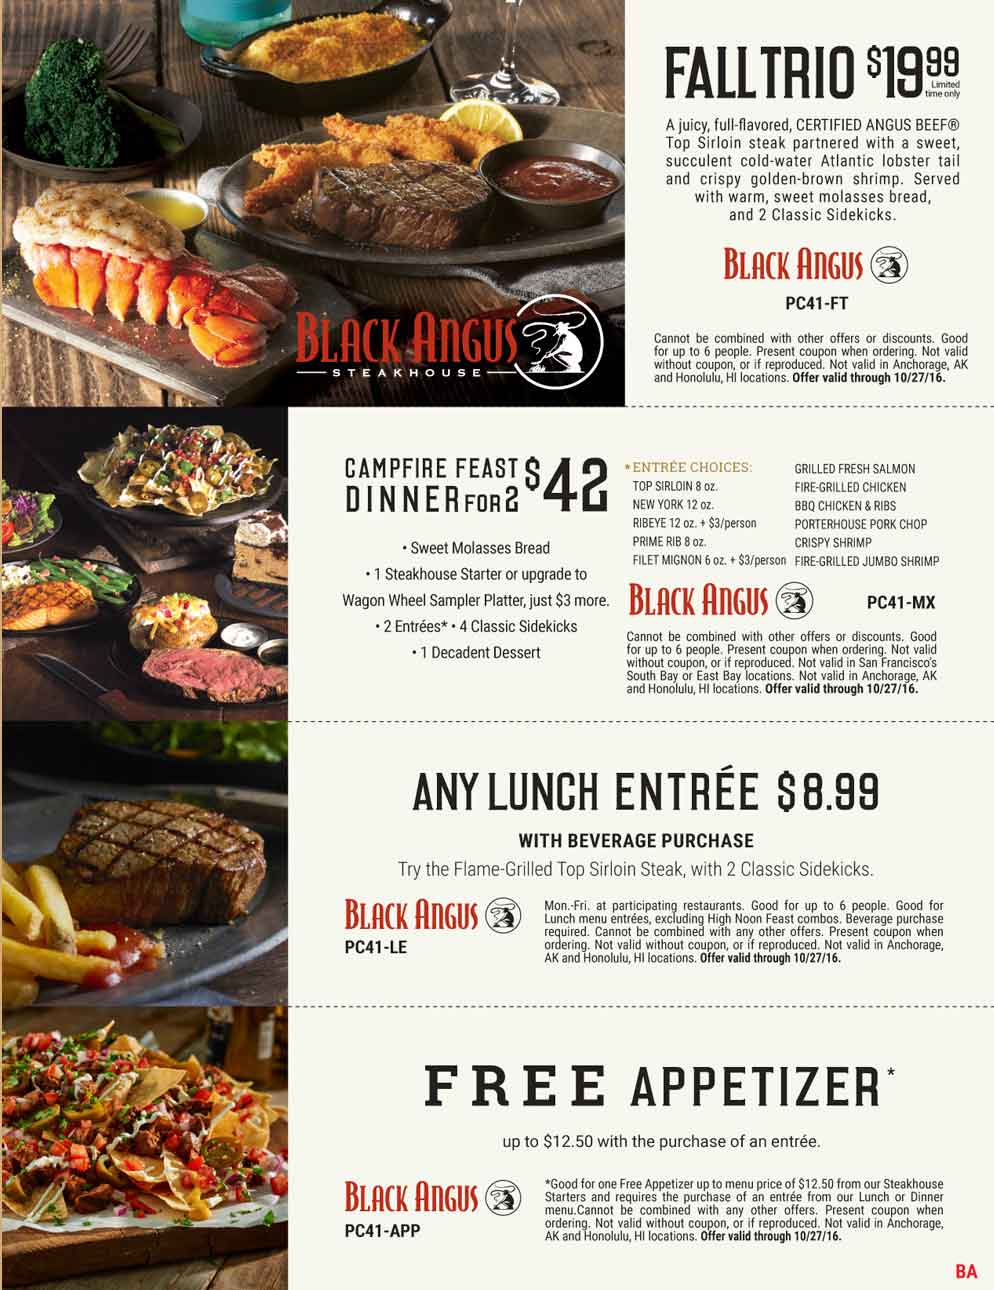 BlackAngus.com Promo Coupon $12 appetizer free with your entree & more at Black Angus steakhouse